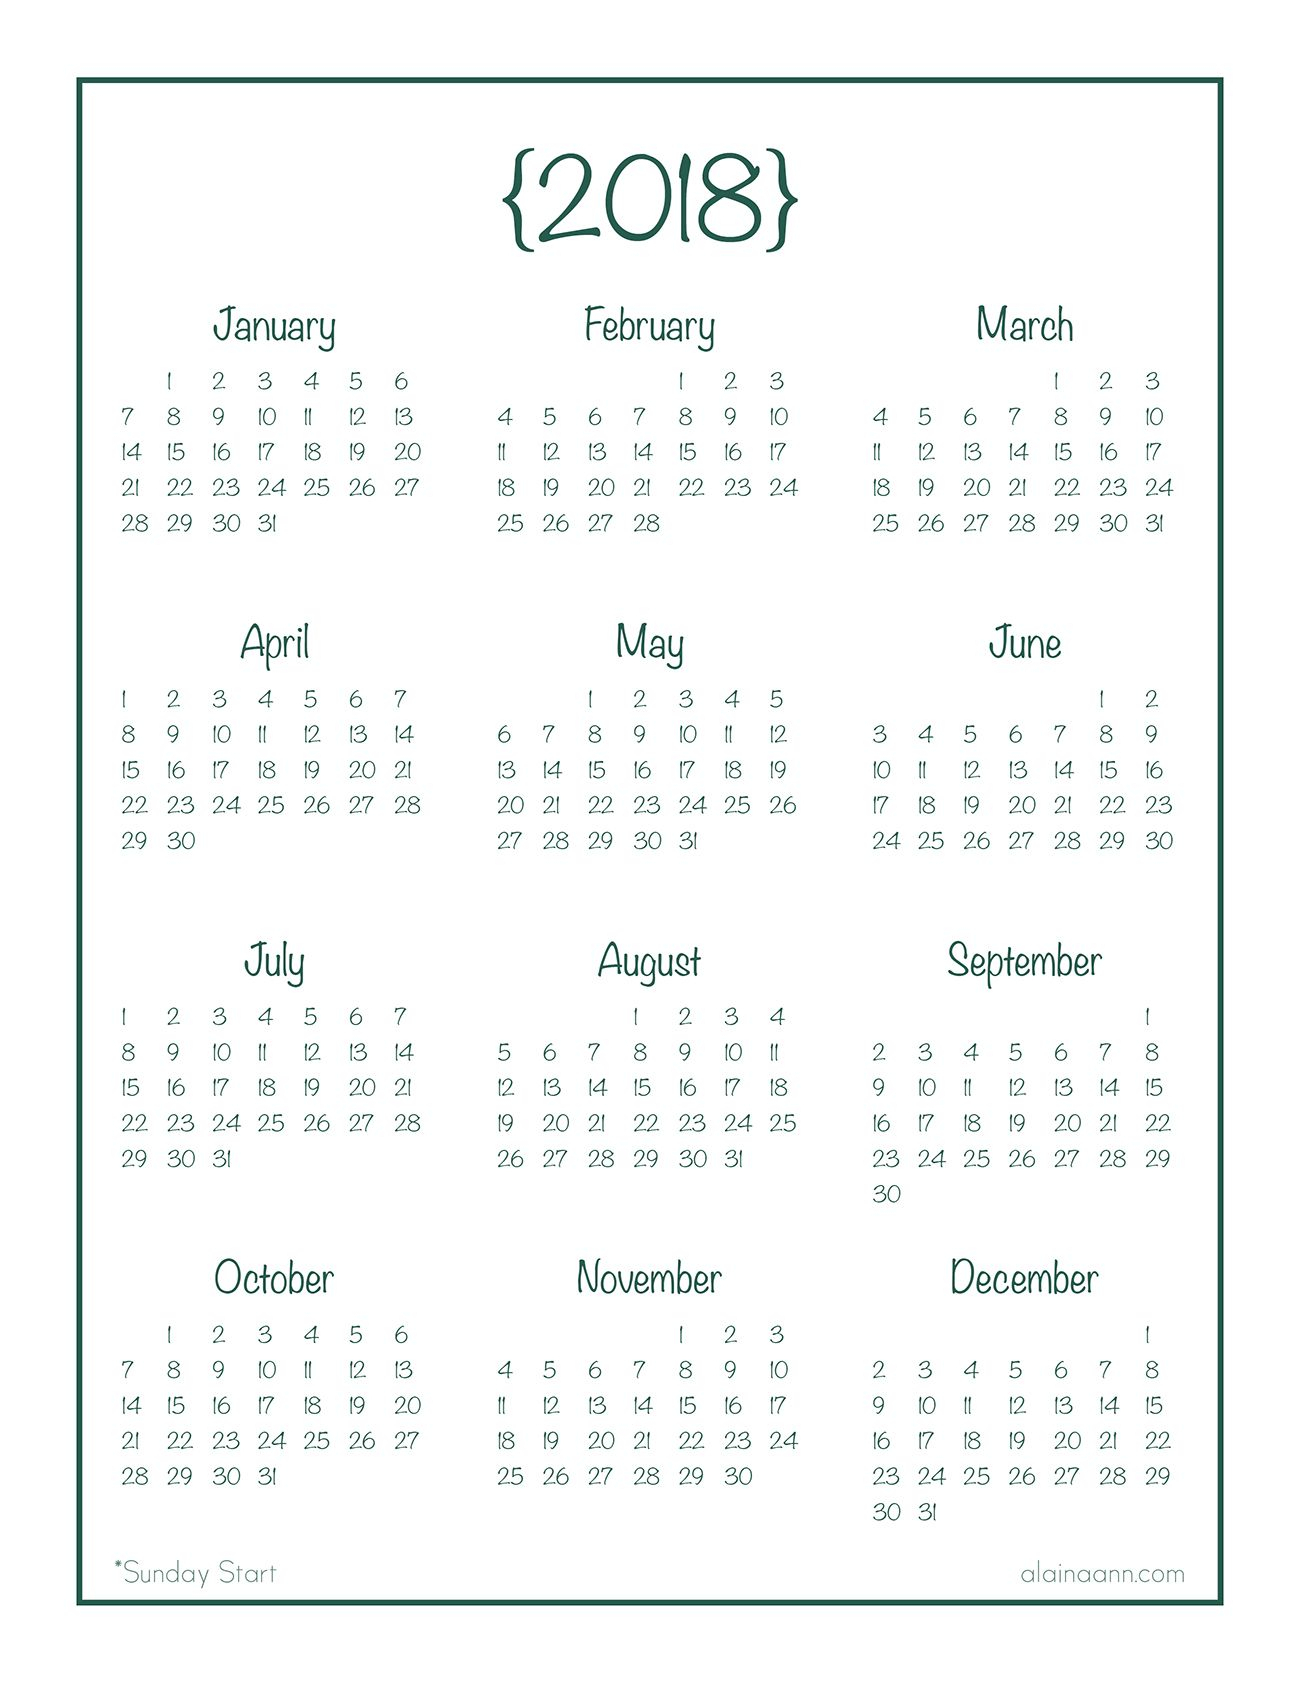 2018 Year-At-A-Glance Calendar {Free Printable} | Календар